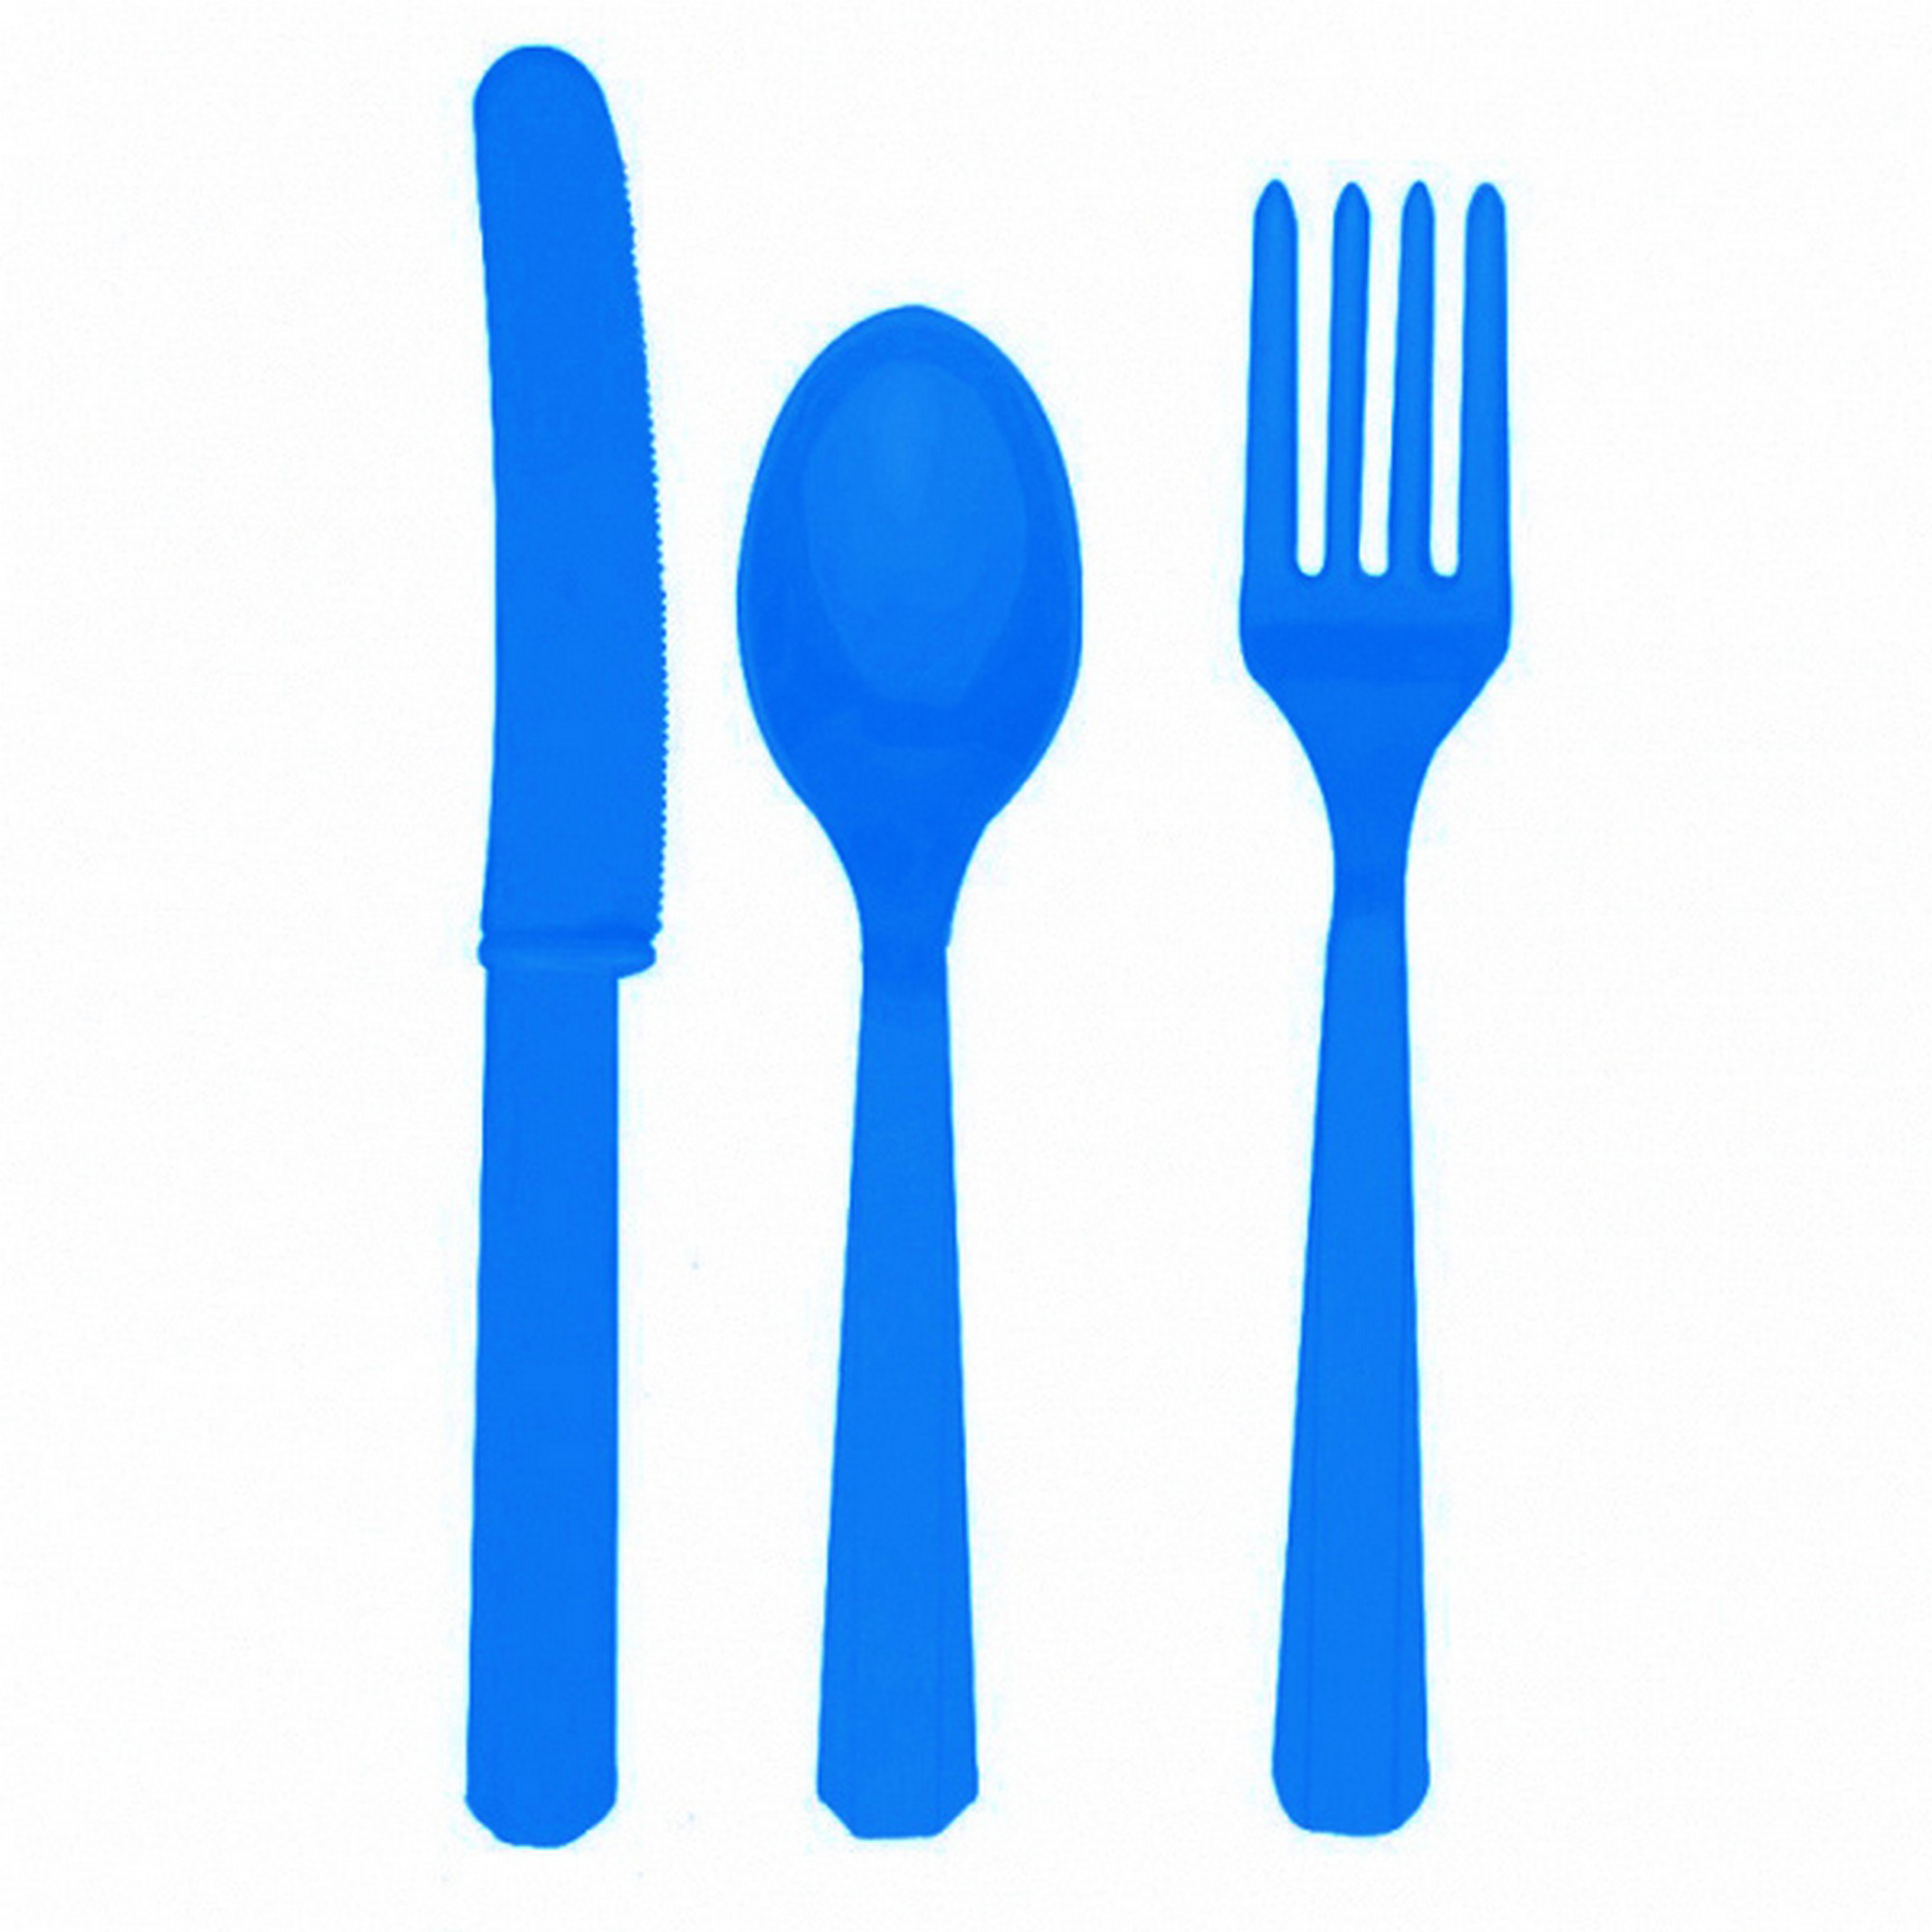 Spoons Forks Knives Set Amscan Plastic Party Cutlery Set Knives Forks And Spoons